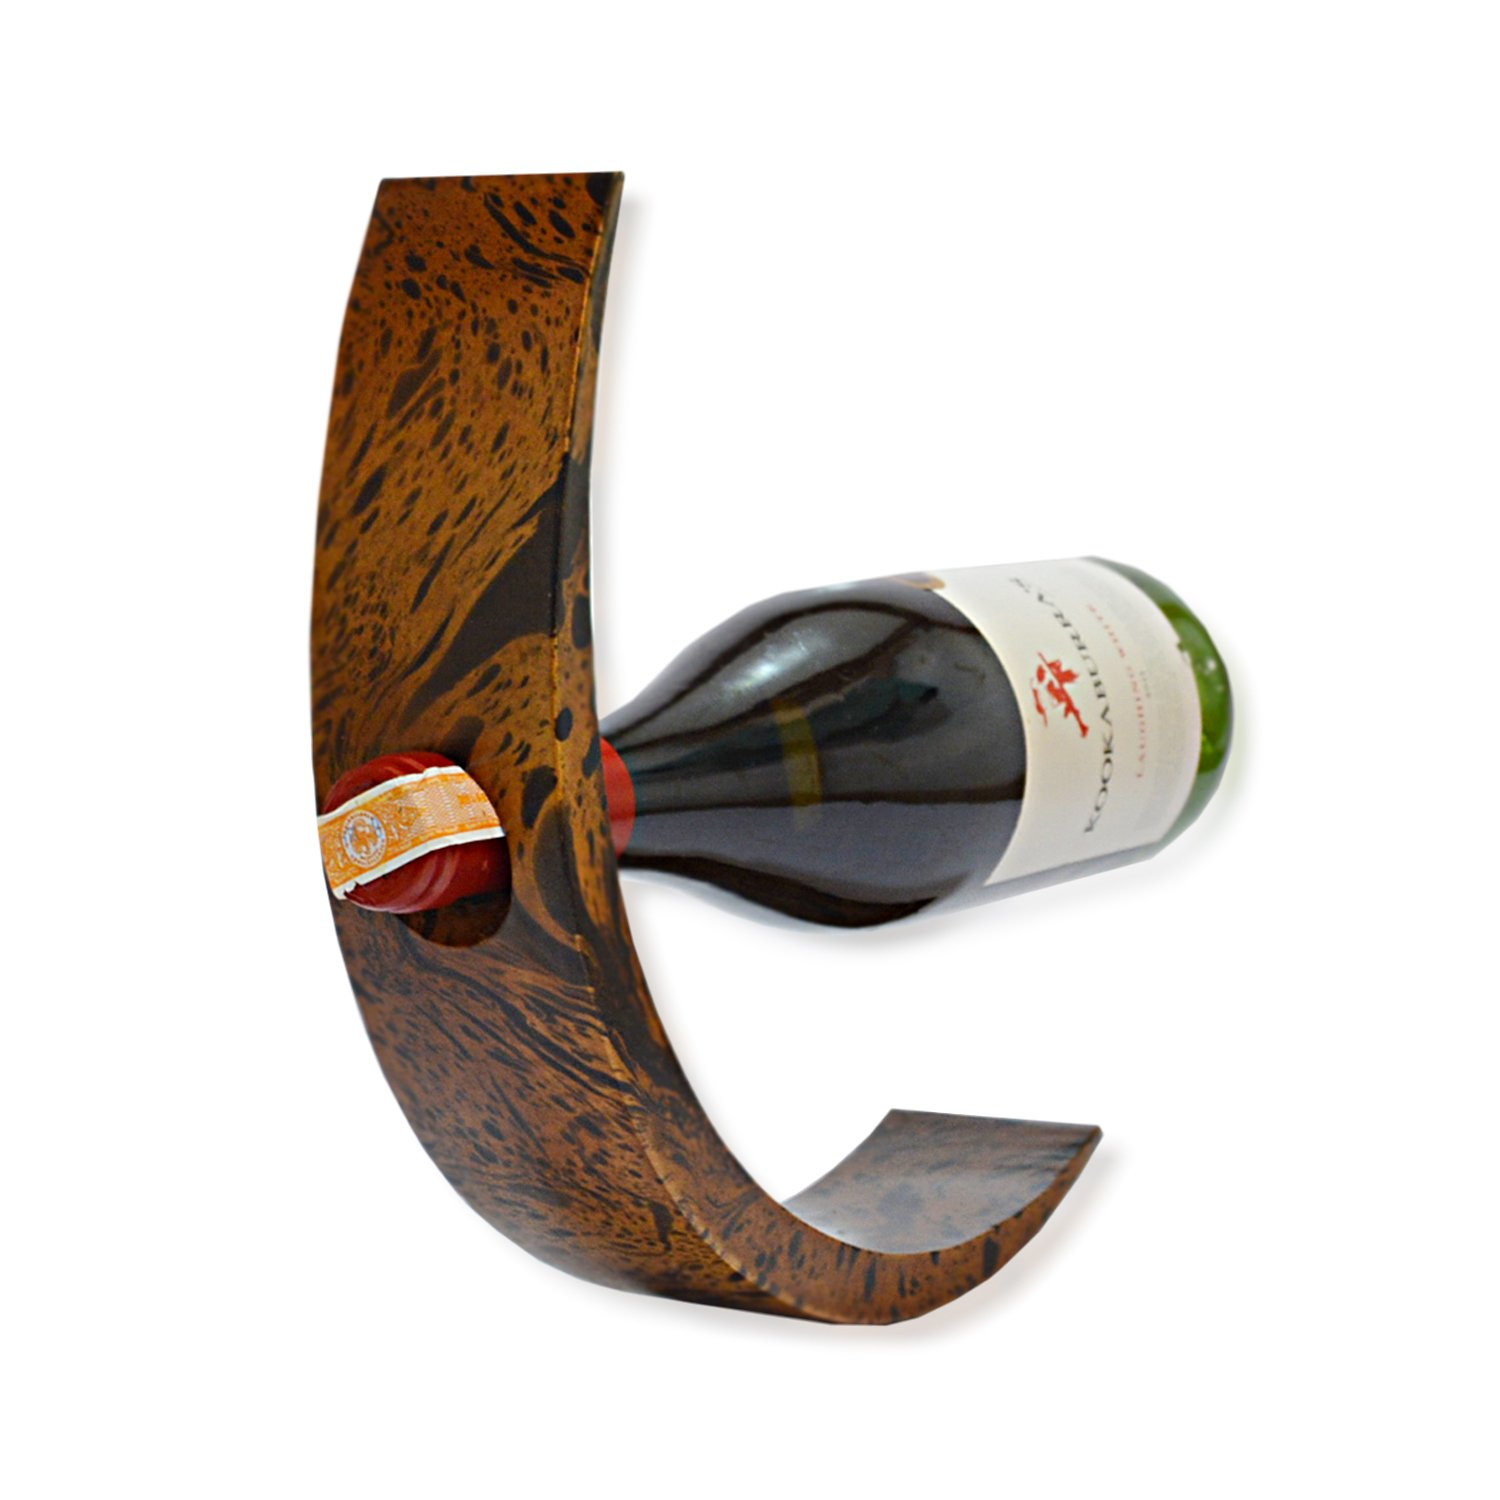 CinMin 10.5 Inch Handcarved Wood Wine Bottle Holder and Balance with Black and Brown Swirl Pattern by CinMin